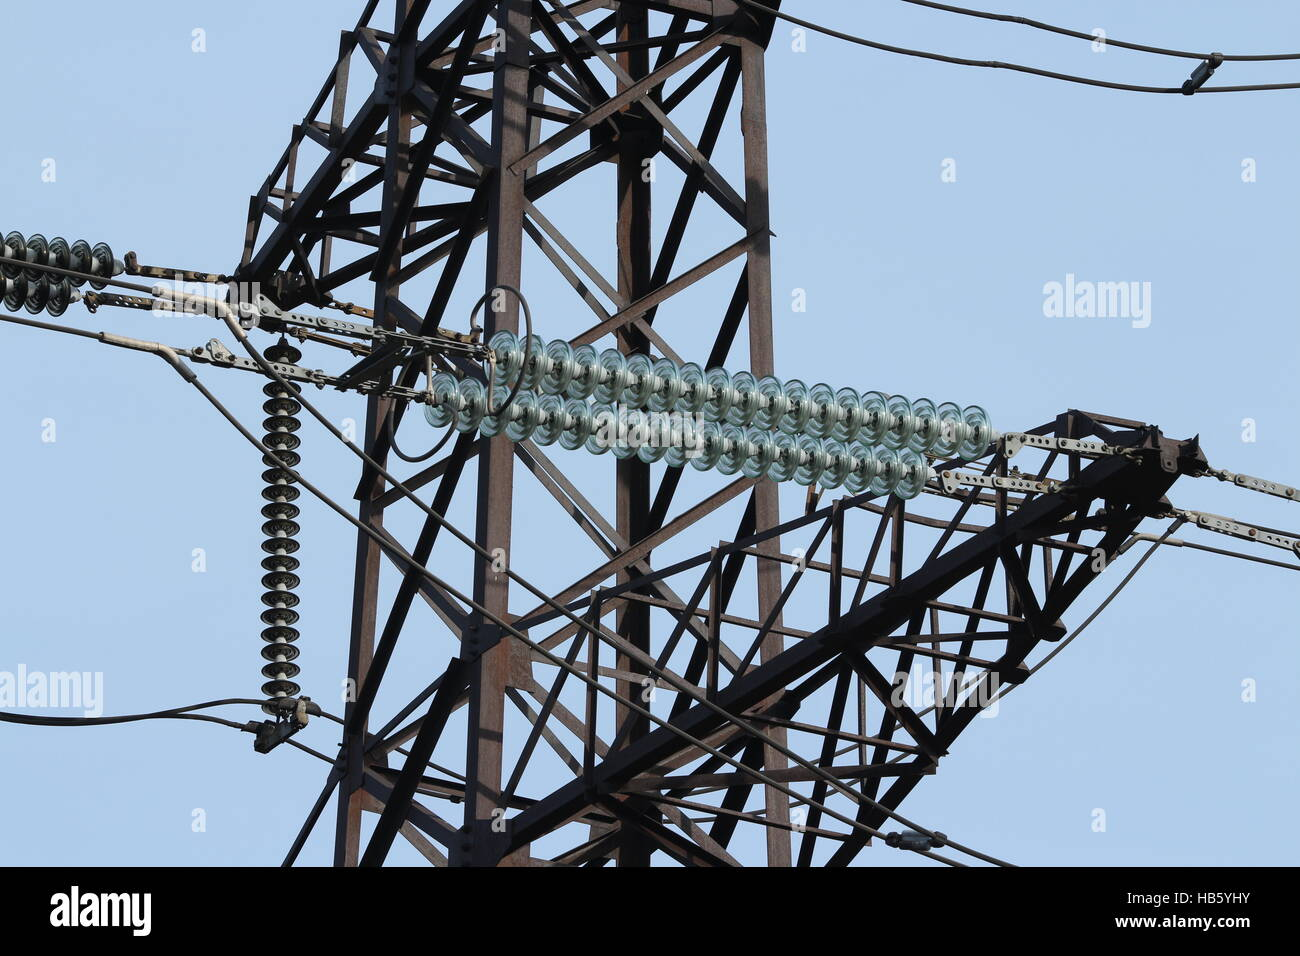 Insulators high voltage power lines stock photo royalty for Glass power line insulators